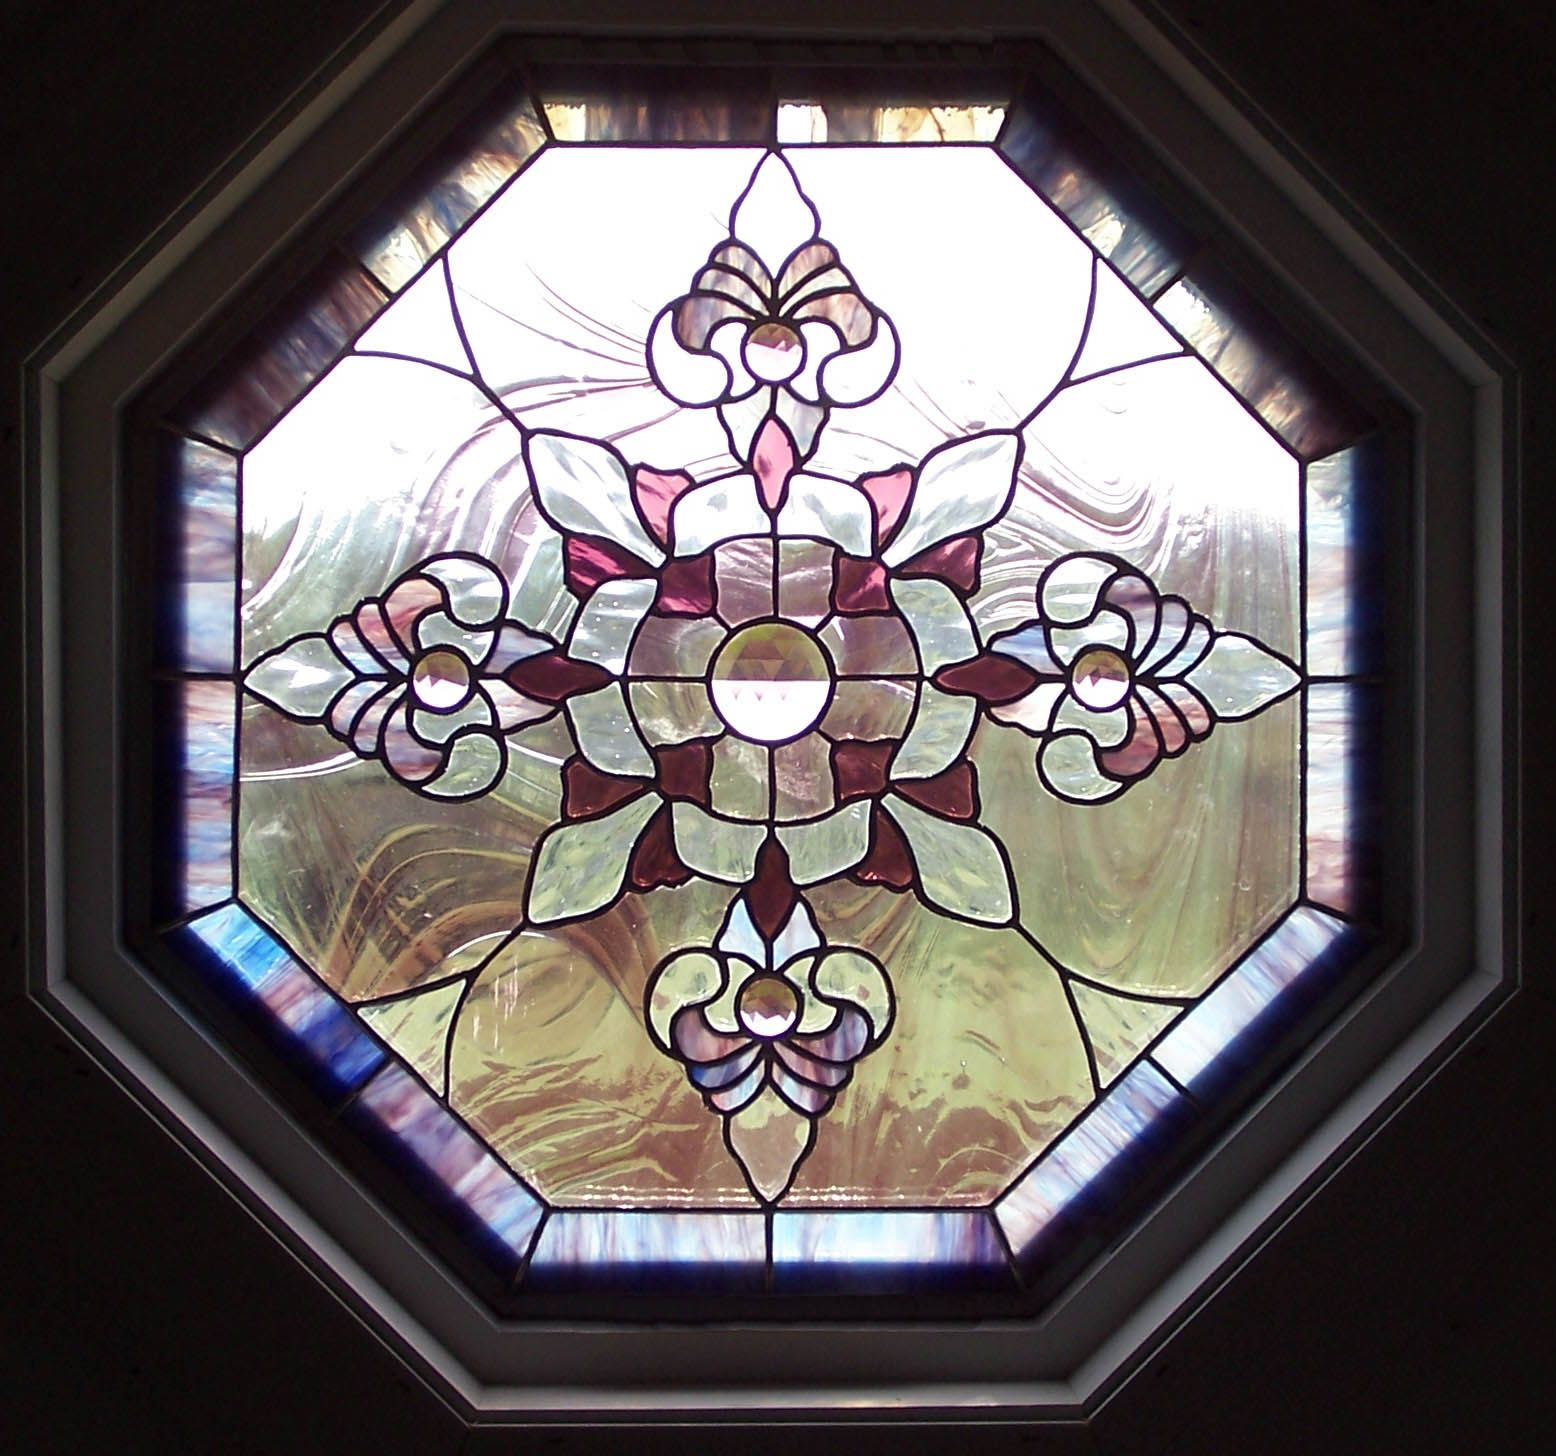 stained glass octagon window inserts | glass carving glass ...